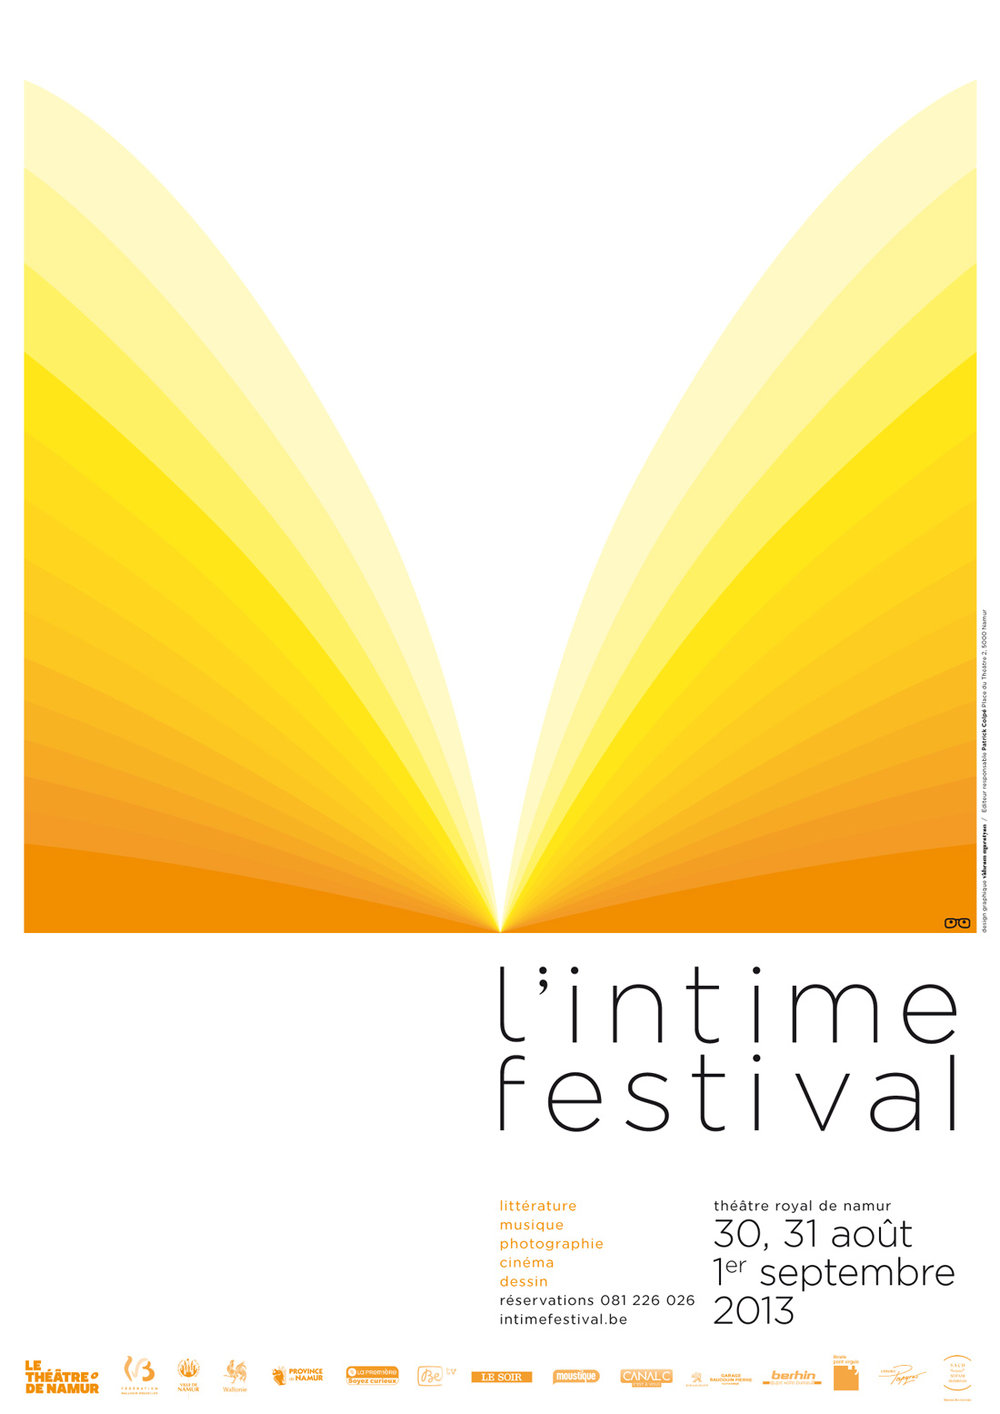 Literary festival poster and design